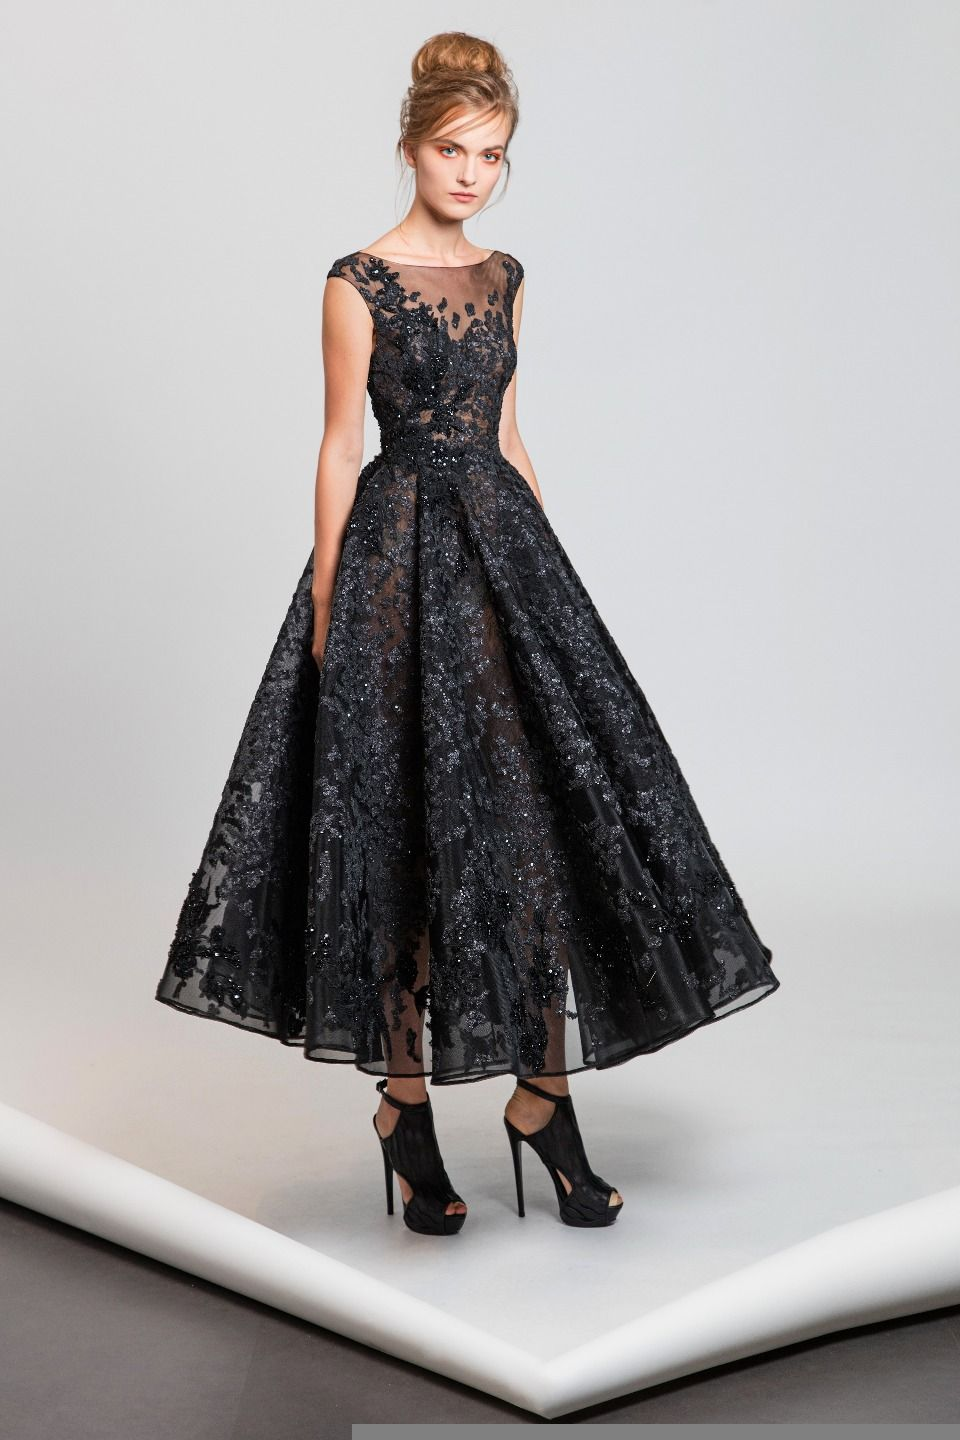 Tea Length A Line Black Dress With Sheer Neckline In Embroidered Tulle Featuring Sequins And Flowery Liques